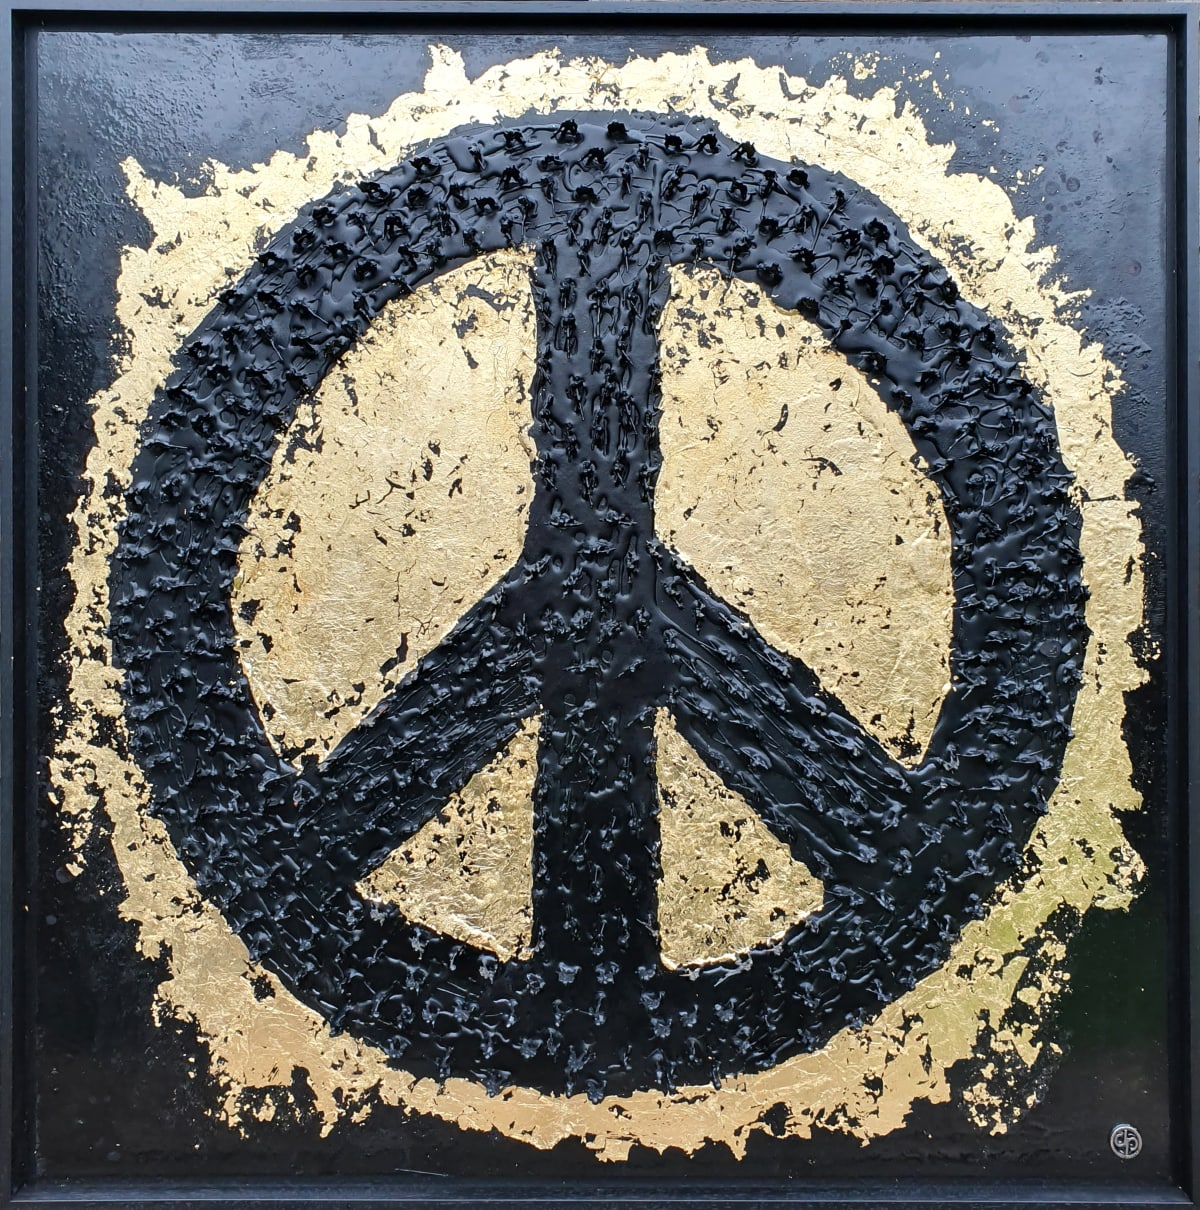 "Dan Pearce Title: Give Peace a Chance Size: 35"" x 35"" Price: £2,000 (Framed)"